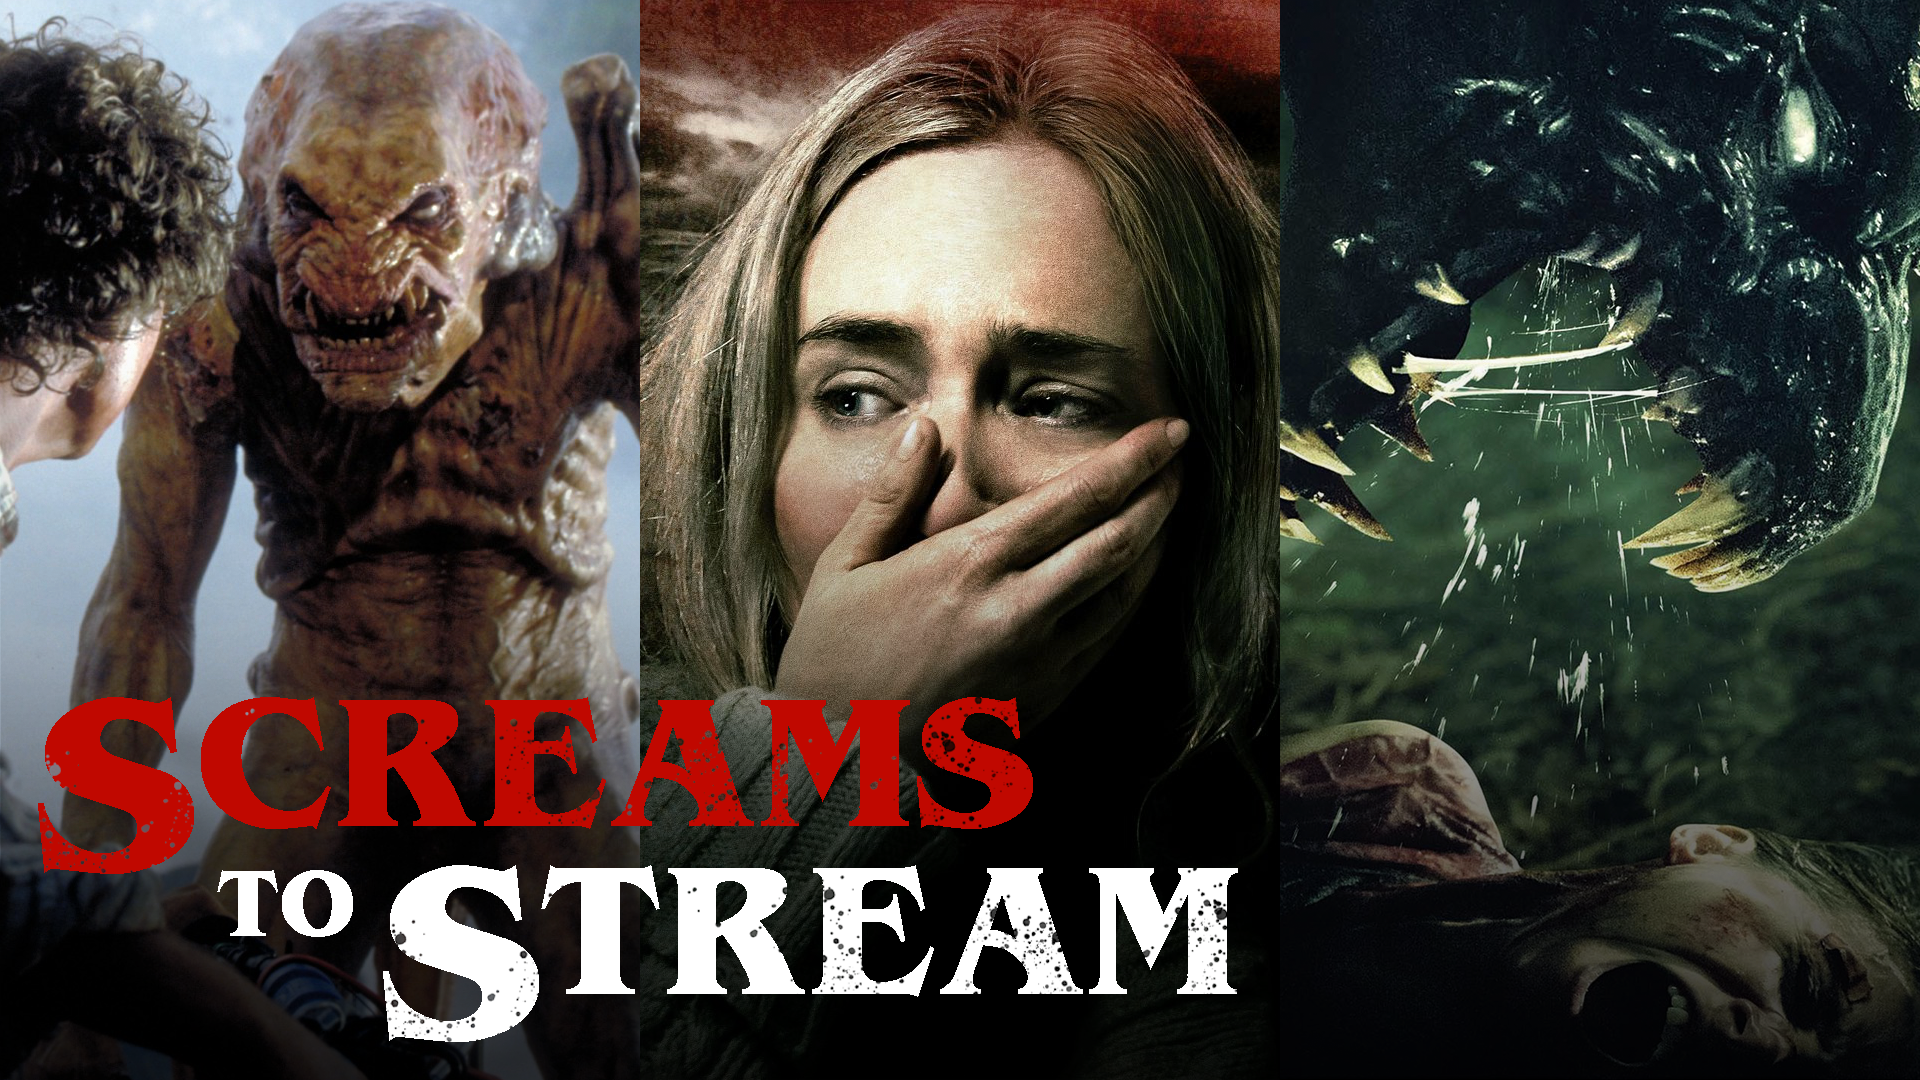 Screams to Stream - Creature Feature Horror Movies screen capture